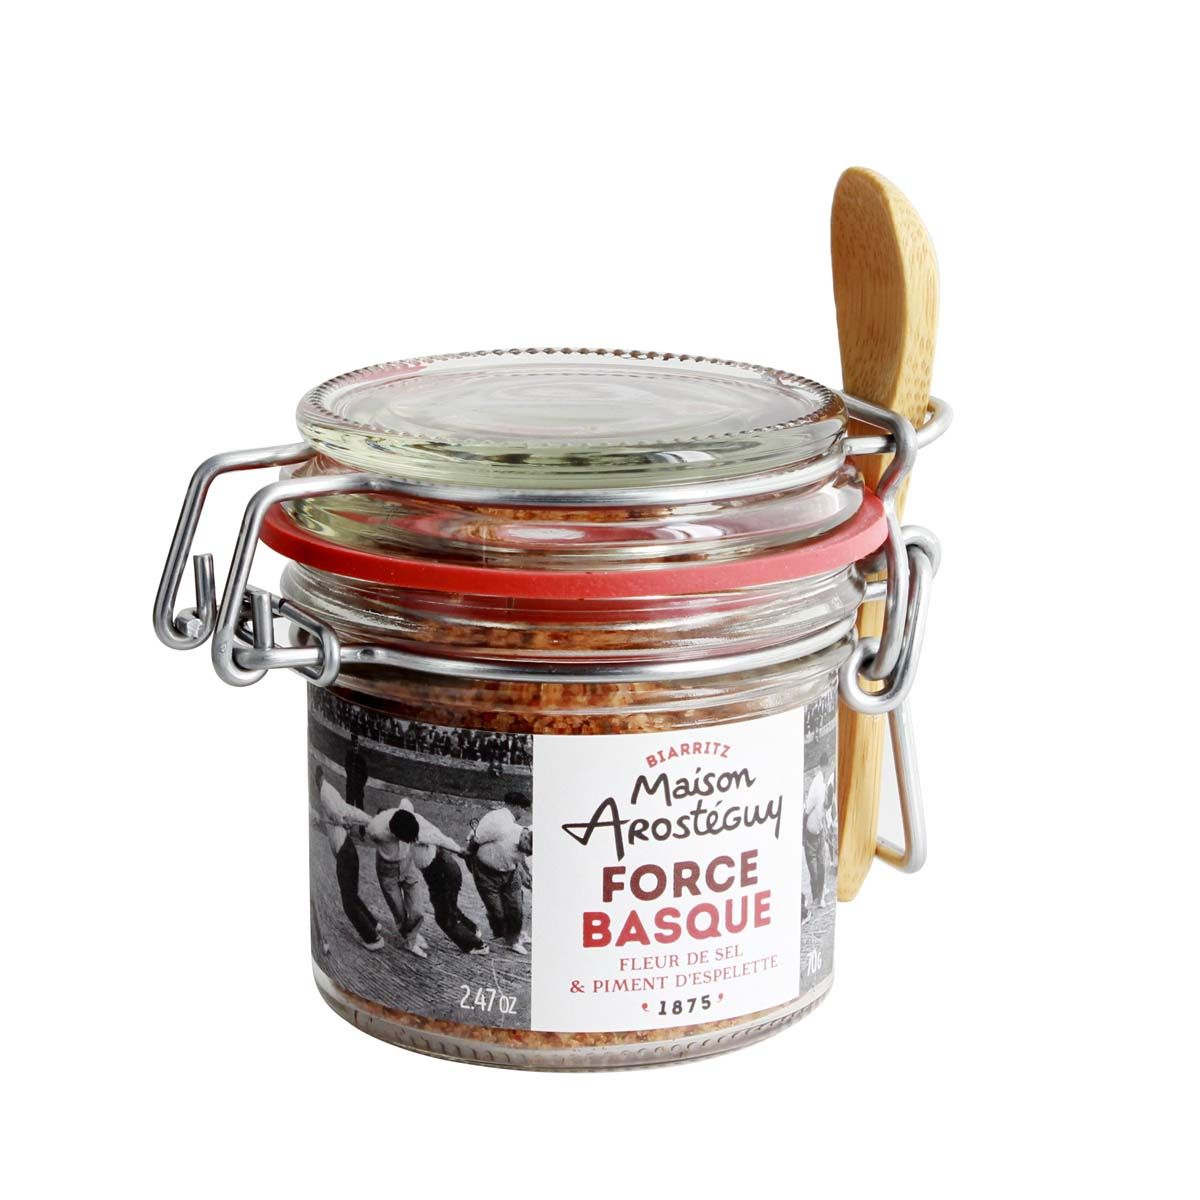 FORCE BASQUE FLEUR DE SEL ET PIMENT D´ESPELETTE - AROSTEGUY